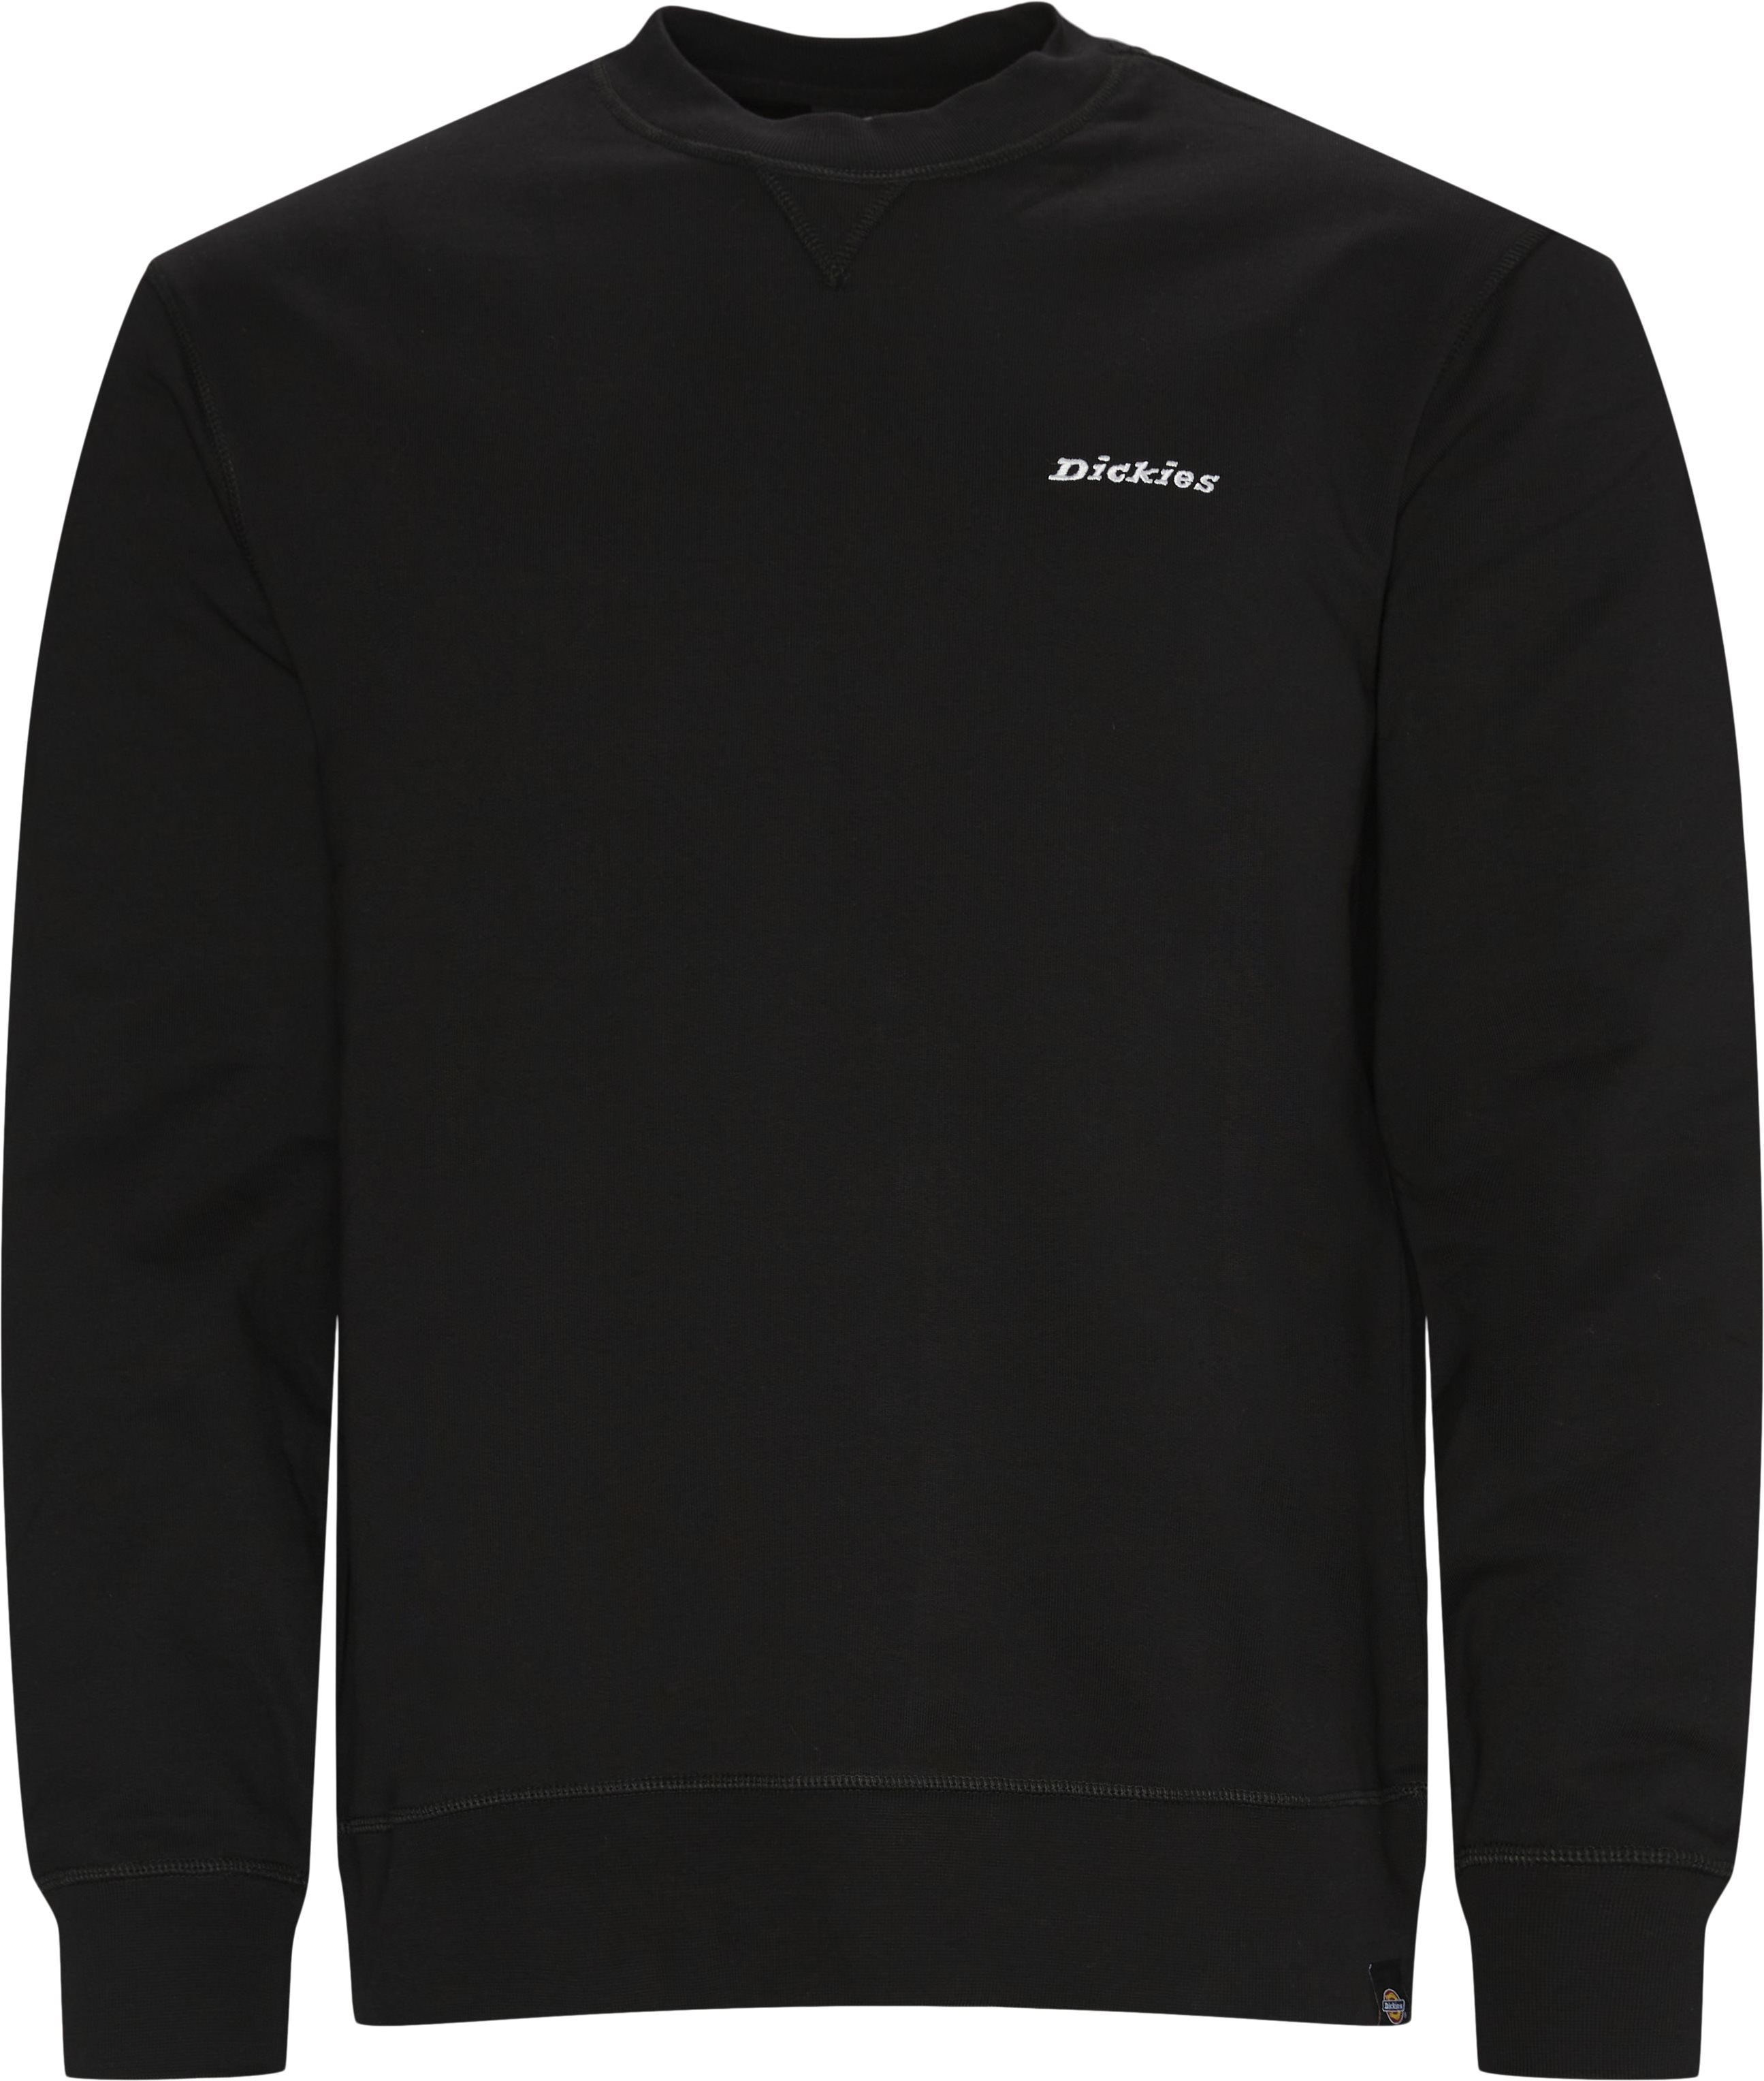 Loretto Crewneck - Sweatshirts - Regular fit - Sort